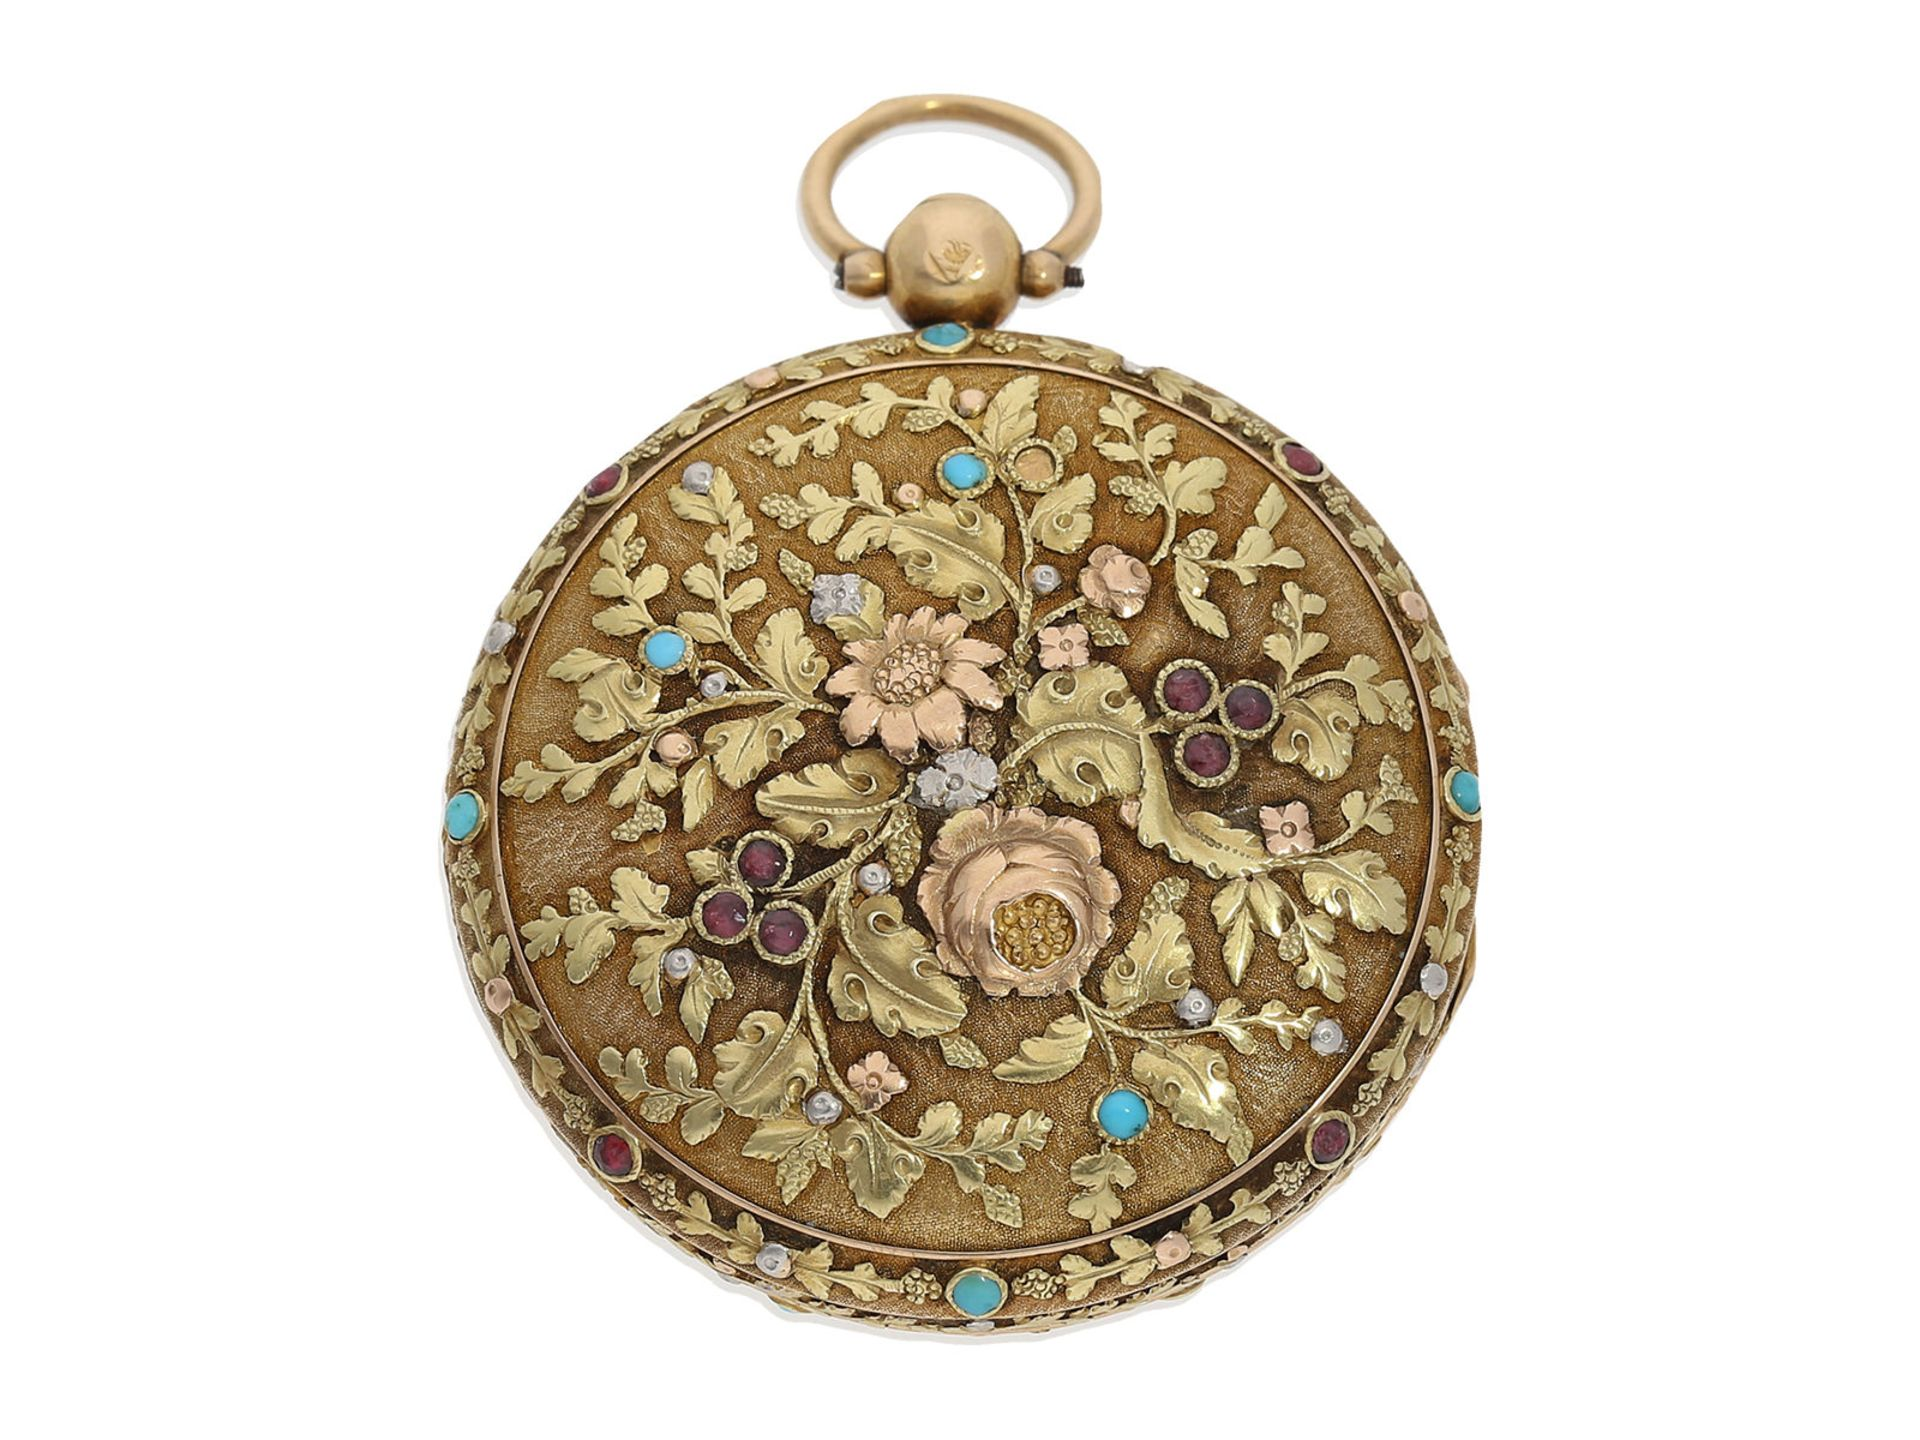 Pocket watch: museum-like 18K 4-coloured verge watch with turquoise setting and corresponding - Bild 2 aus 7